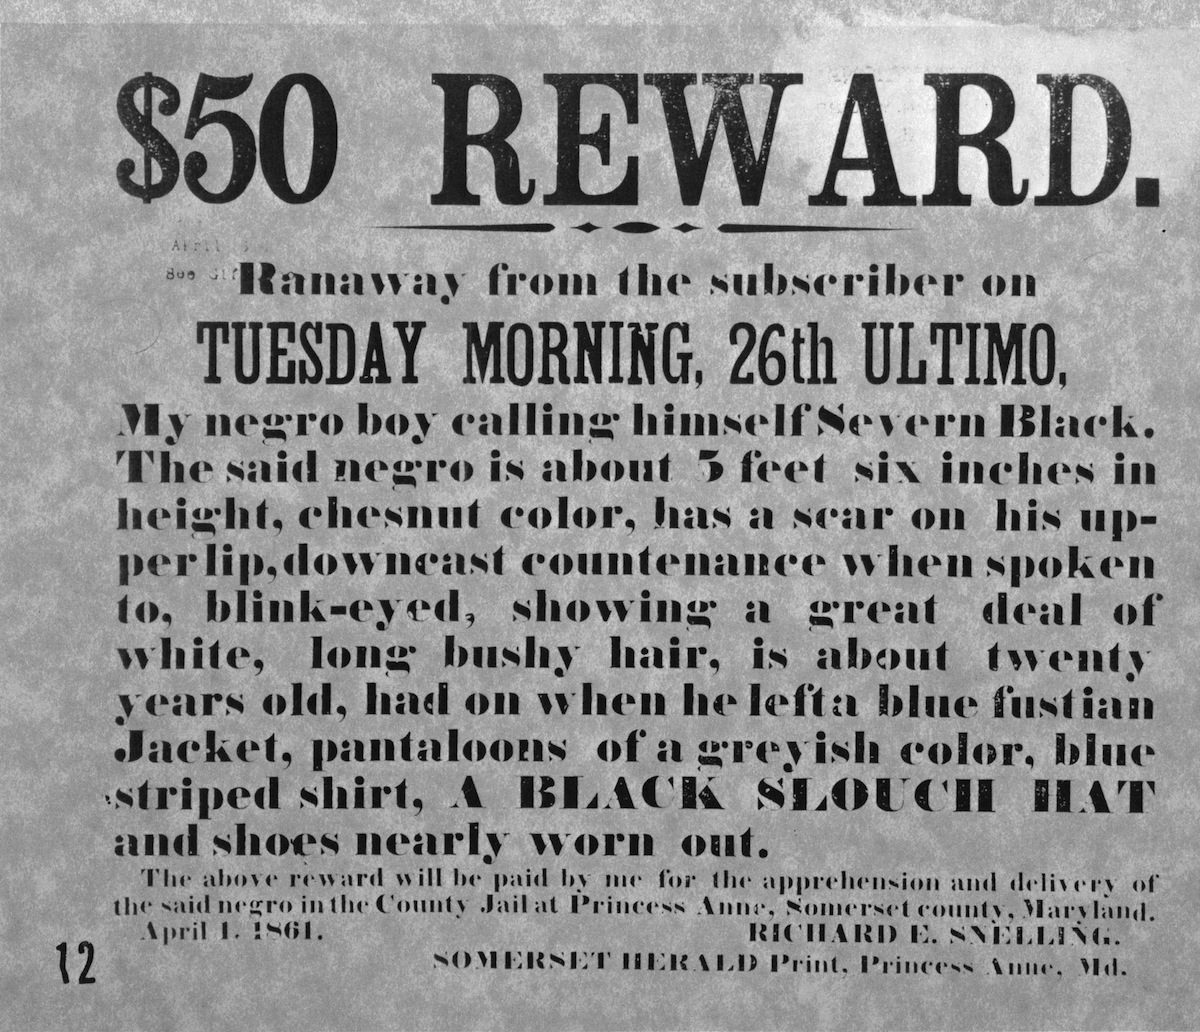 A newspaper advertisement offering reward for the return of an escaped slave to his oppressors, Princess Anne, Md., April 1, 1861. The Fugitive Slave Act of 1850 obliged citizens and lawmen of free zones to return escaped slaves to those whom they fled.